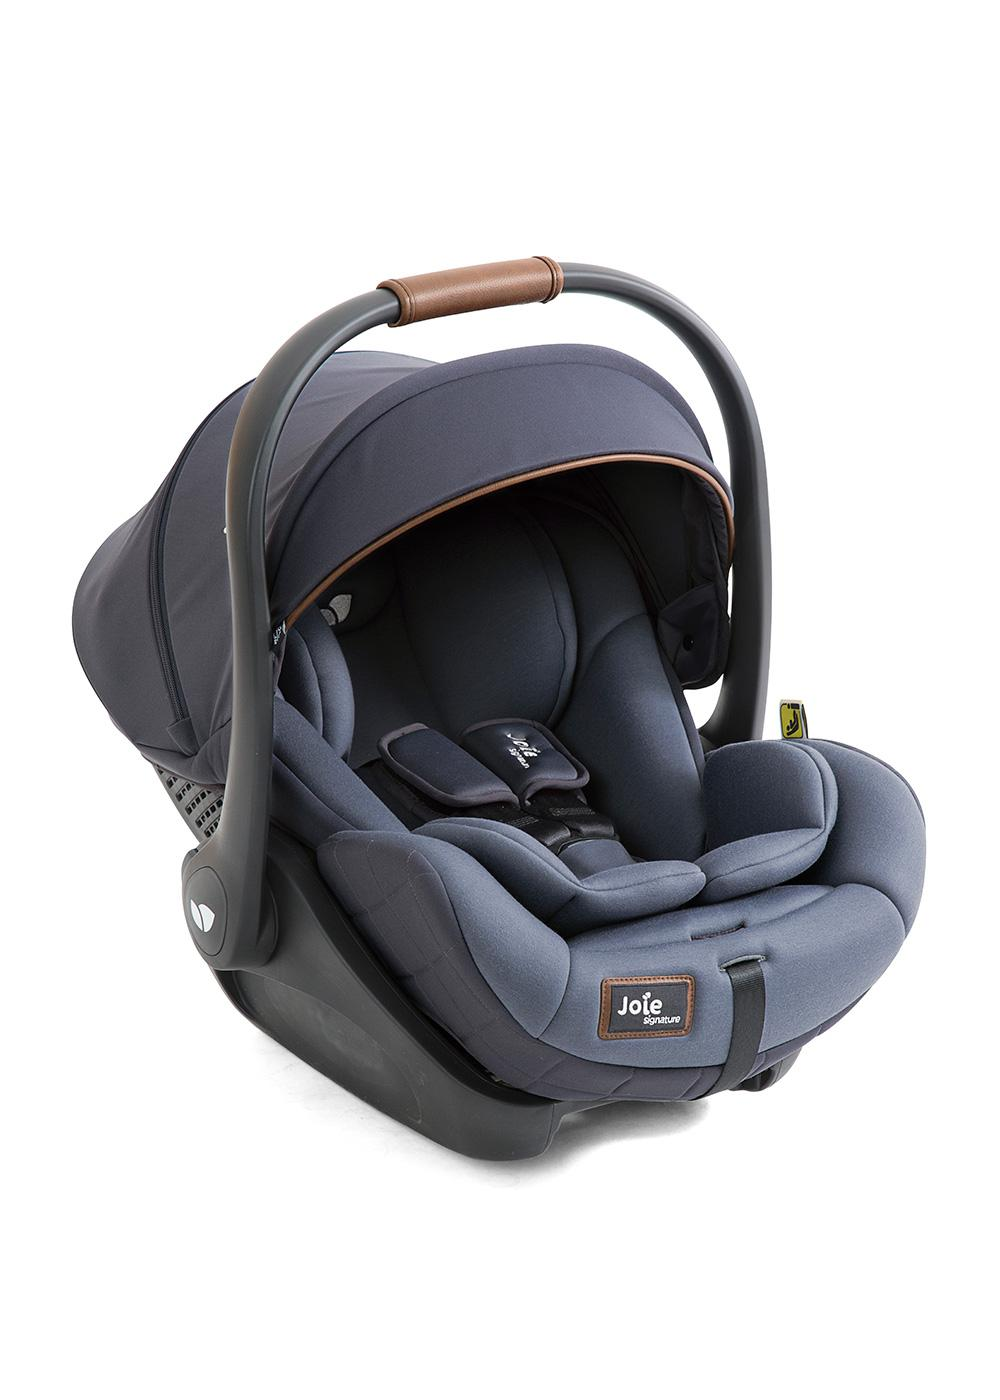 Joie i-Level i-Size Baby Carrier with isofix base Granit Bleu - Joie